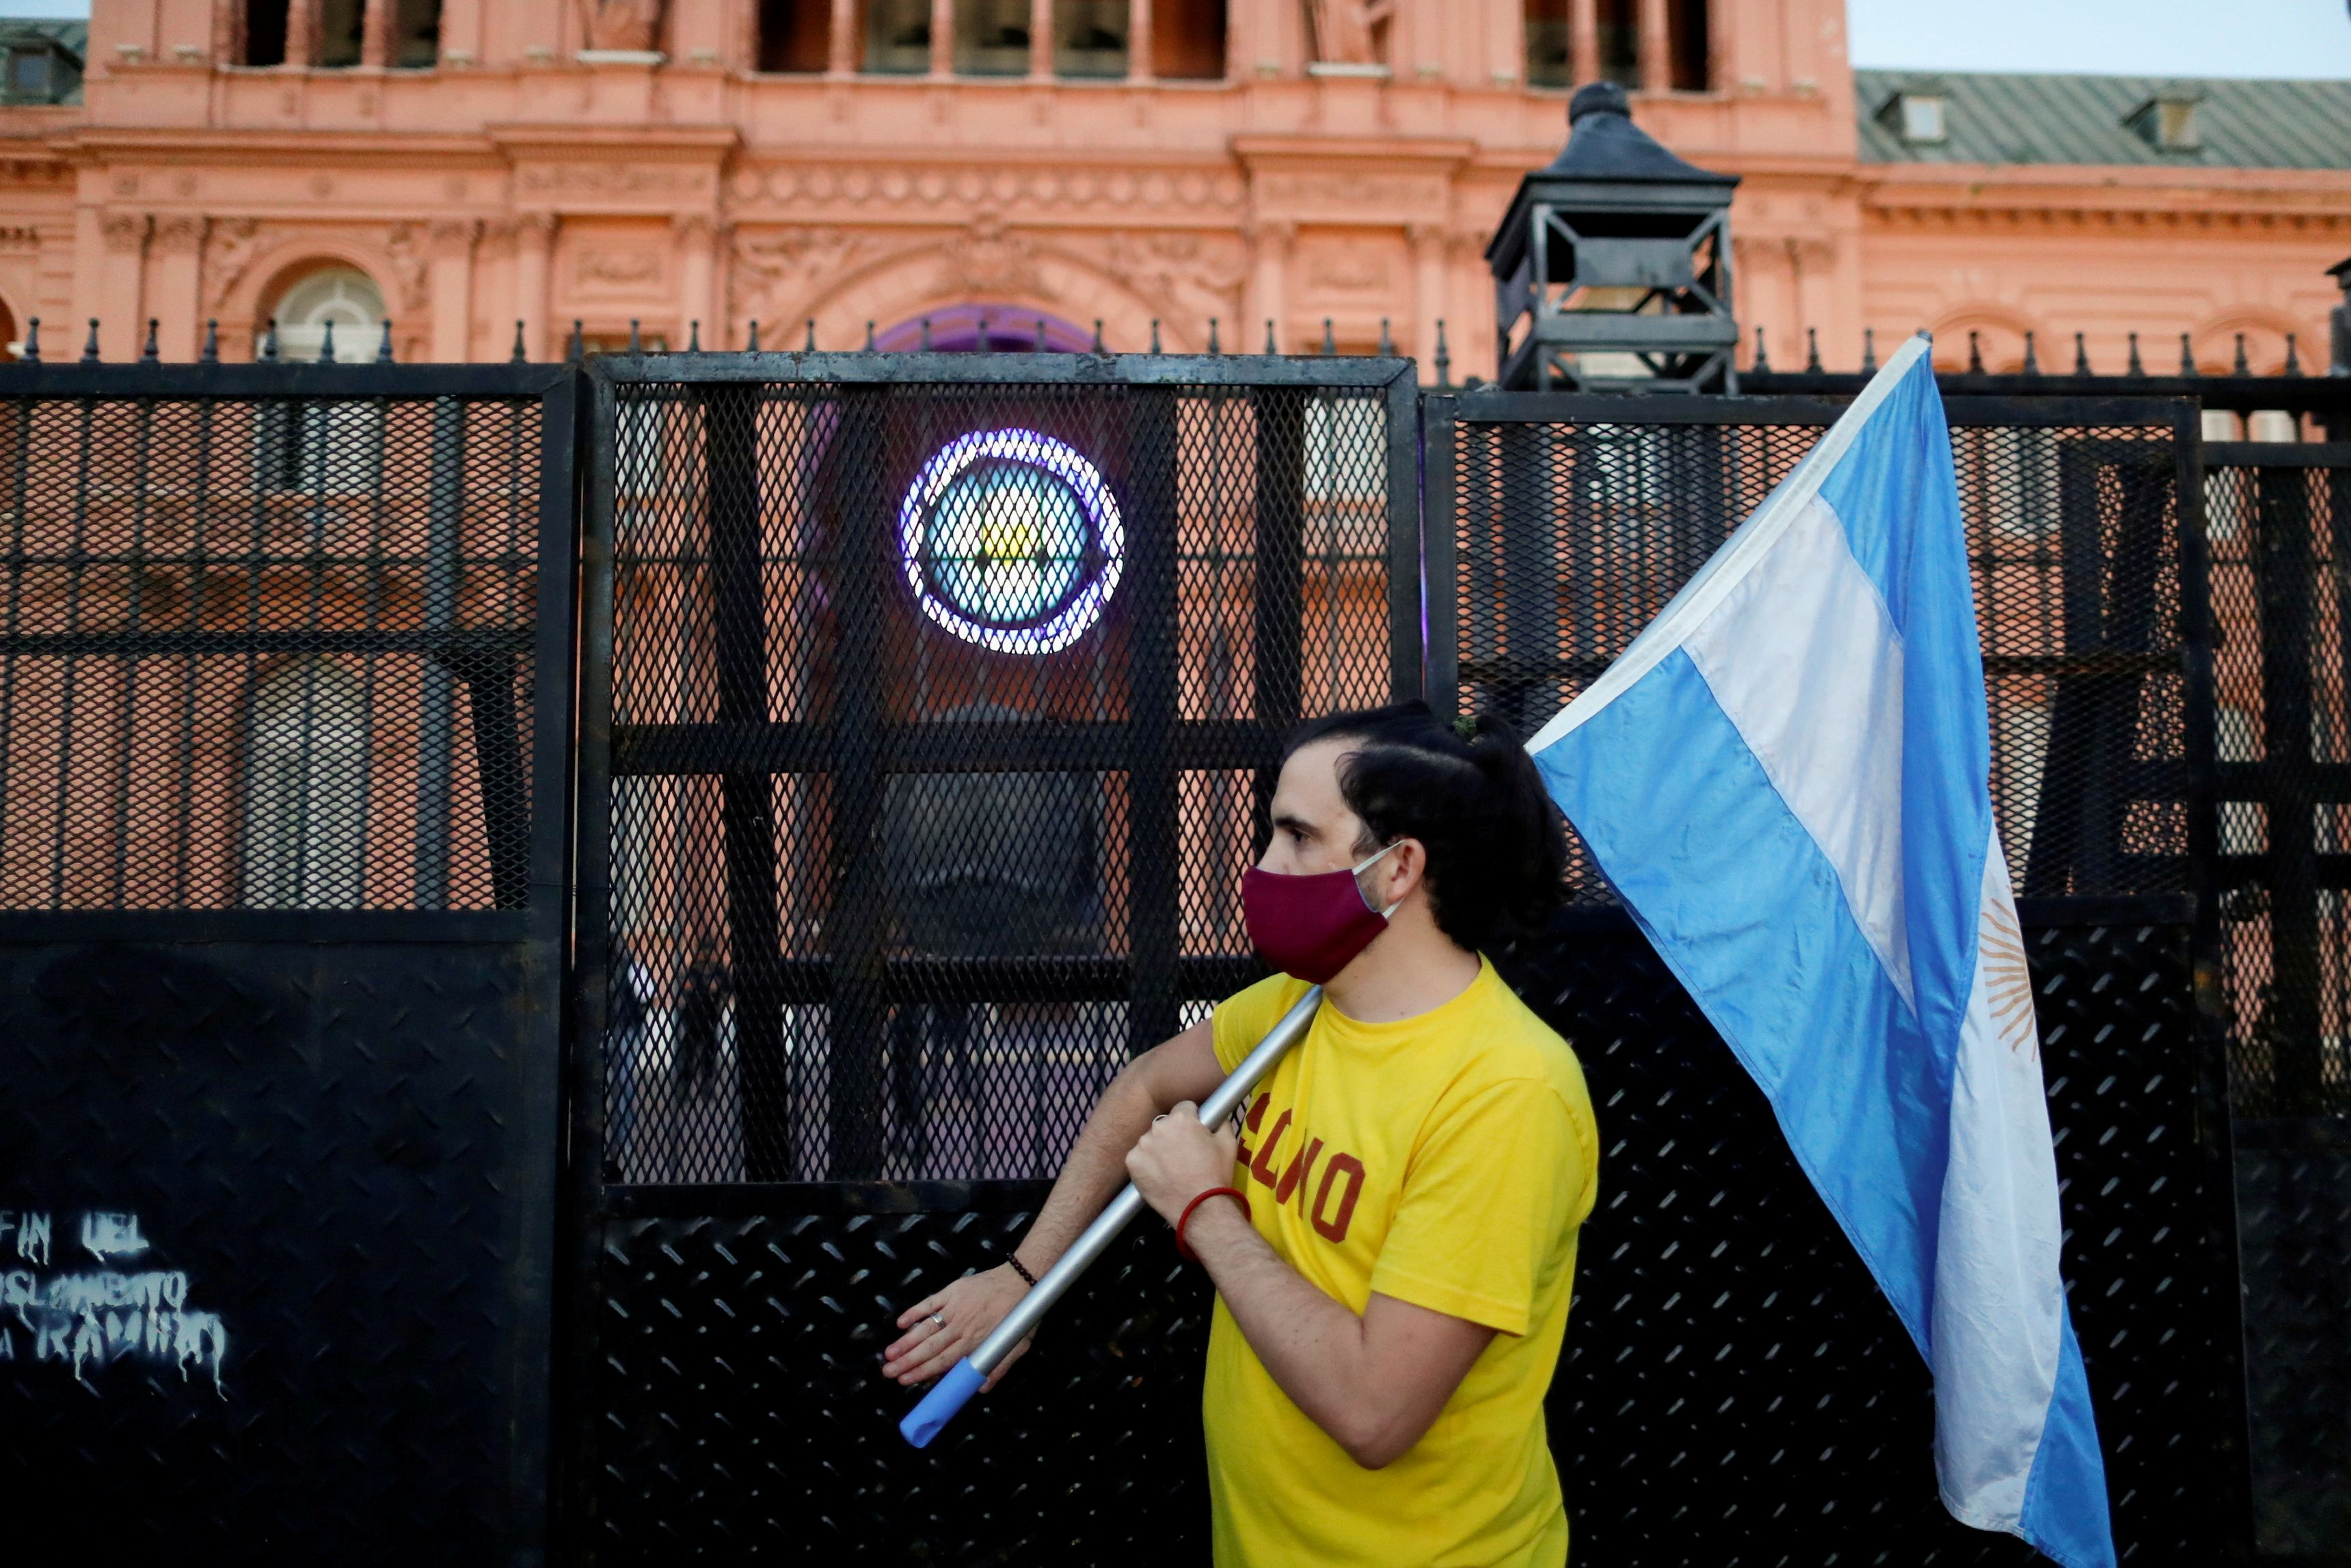 A demonstrator holds an Argentinian flag as they protest against Argentina's President Alberto Fernandez's lockdown measures to curb the spread of the coronavirus (COVID-19) disease, outside Casa Rosada presidential palace in Buenos Aires, Argentina, April 17, 2021. REUTERS/Agustin Marcarian/